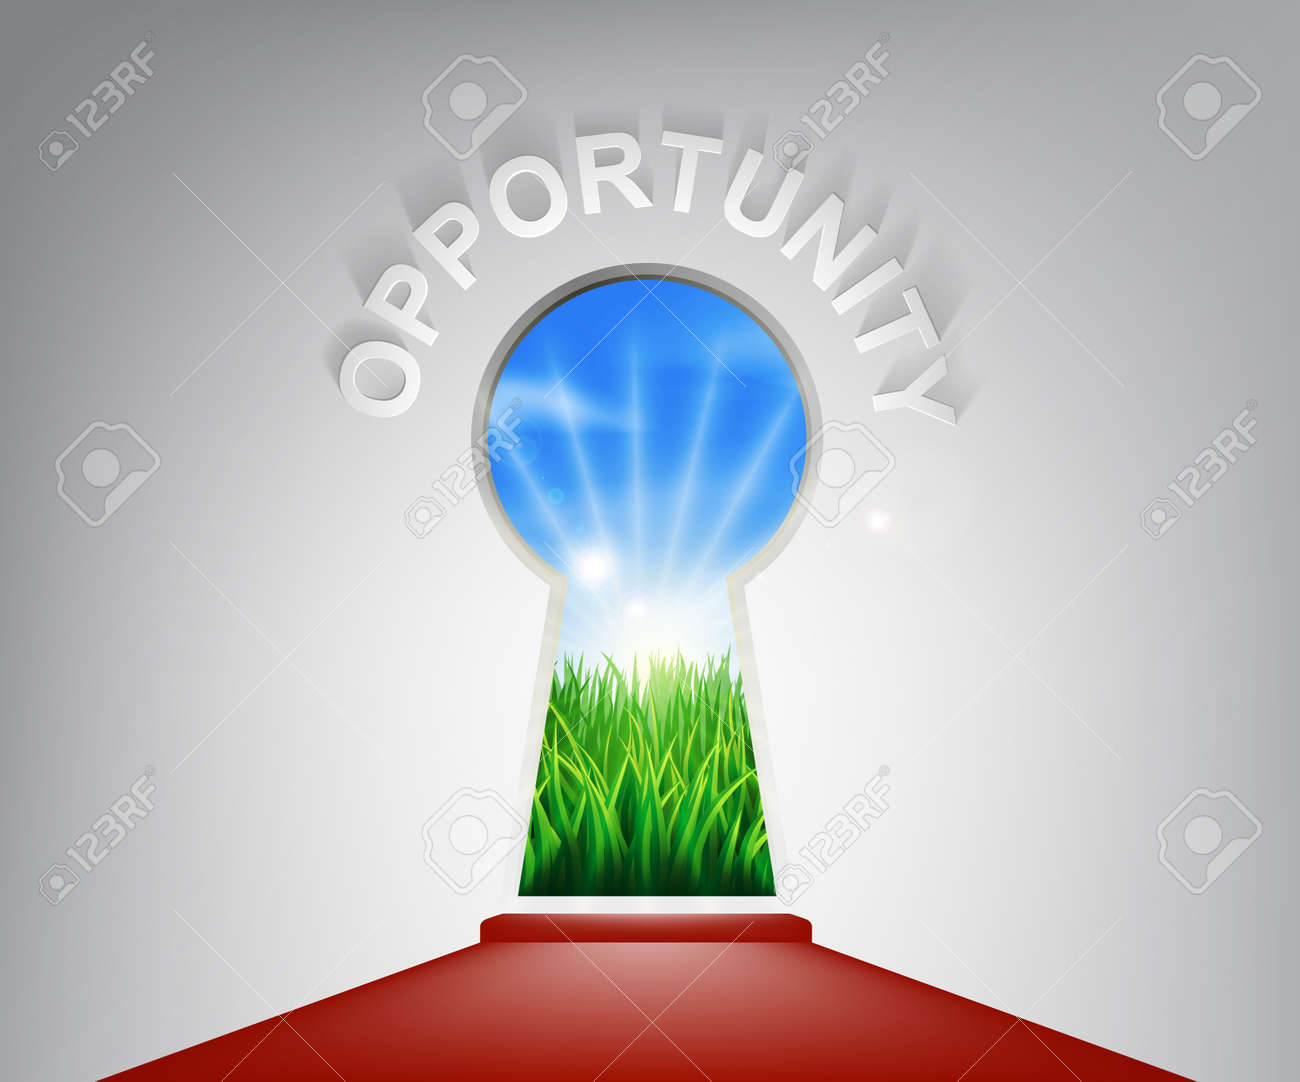 A conceptual illustration of a opportunity keyhole entrance opening onto a field of lush green grass. Concept for a new life or opportunity Stock Vector - 25041401